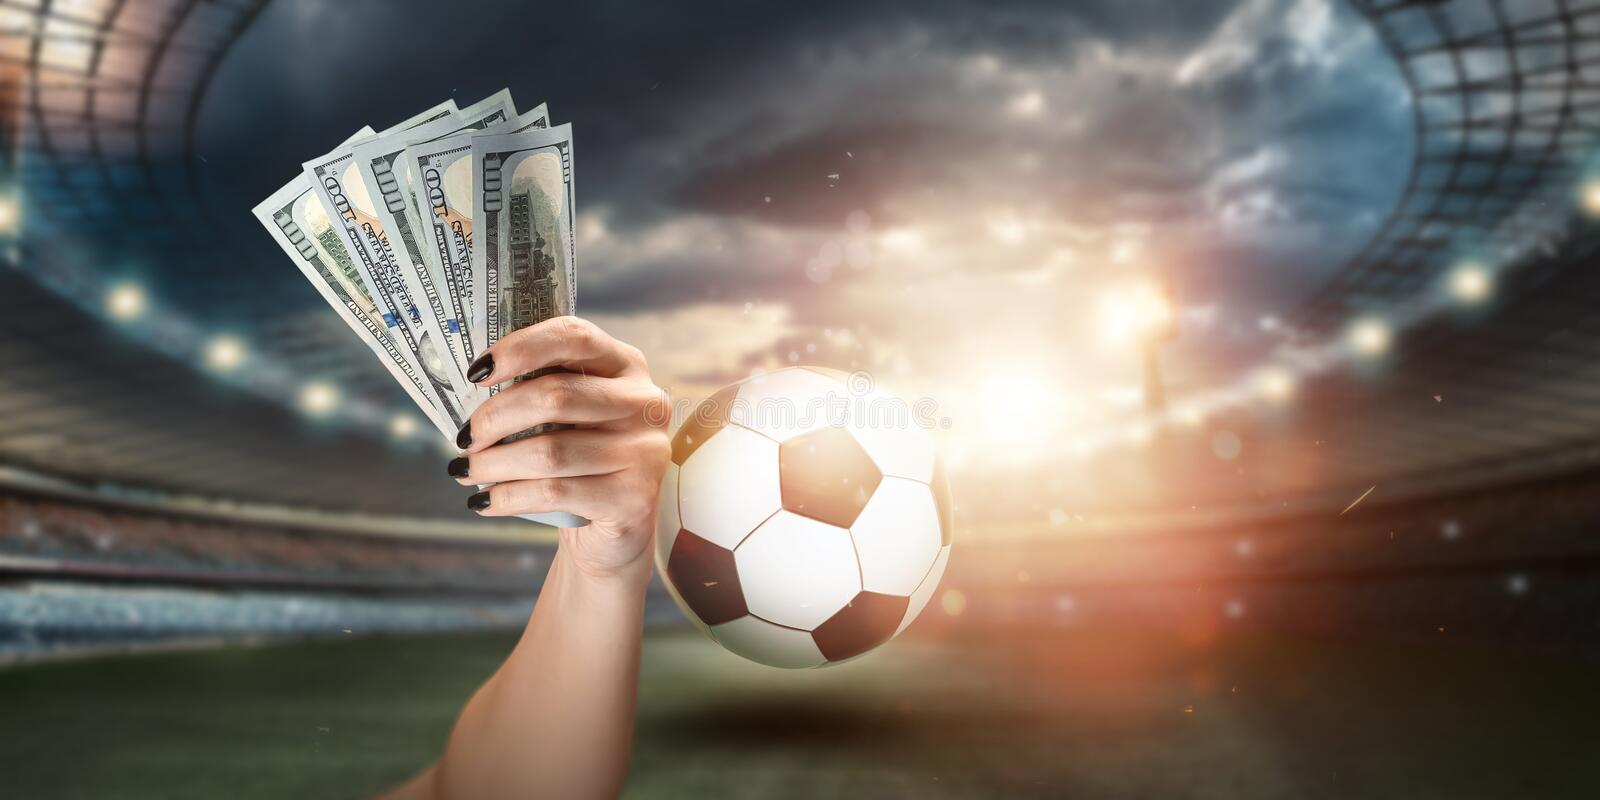 790 Betting Stadium Photos - Free & Royalty-Free Stock Photos from  Dreamstime